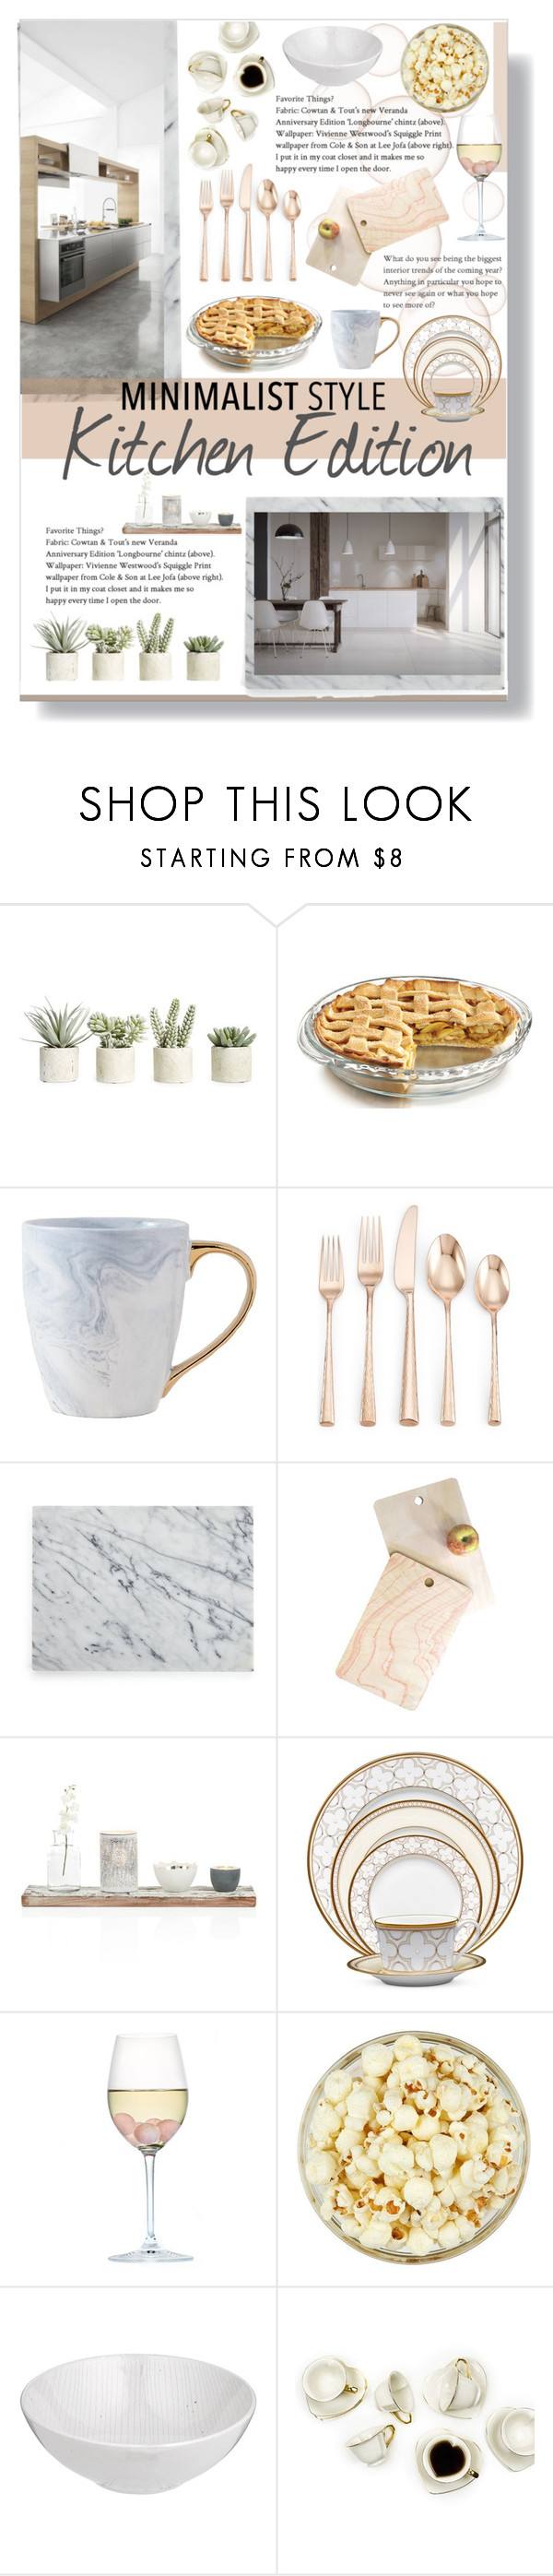 """""""Minimalist Style: Kitchen Edition"""" by lillyluvs ❤ liked on Polyvore featuring interior, interiors, interior design, home, home decor, interior decorating, Allstate Floral, Lenox, Crate and Barrel and DENY Designs"""